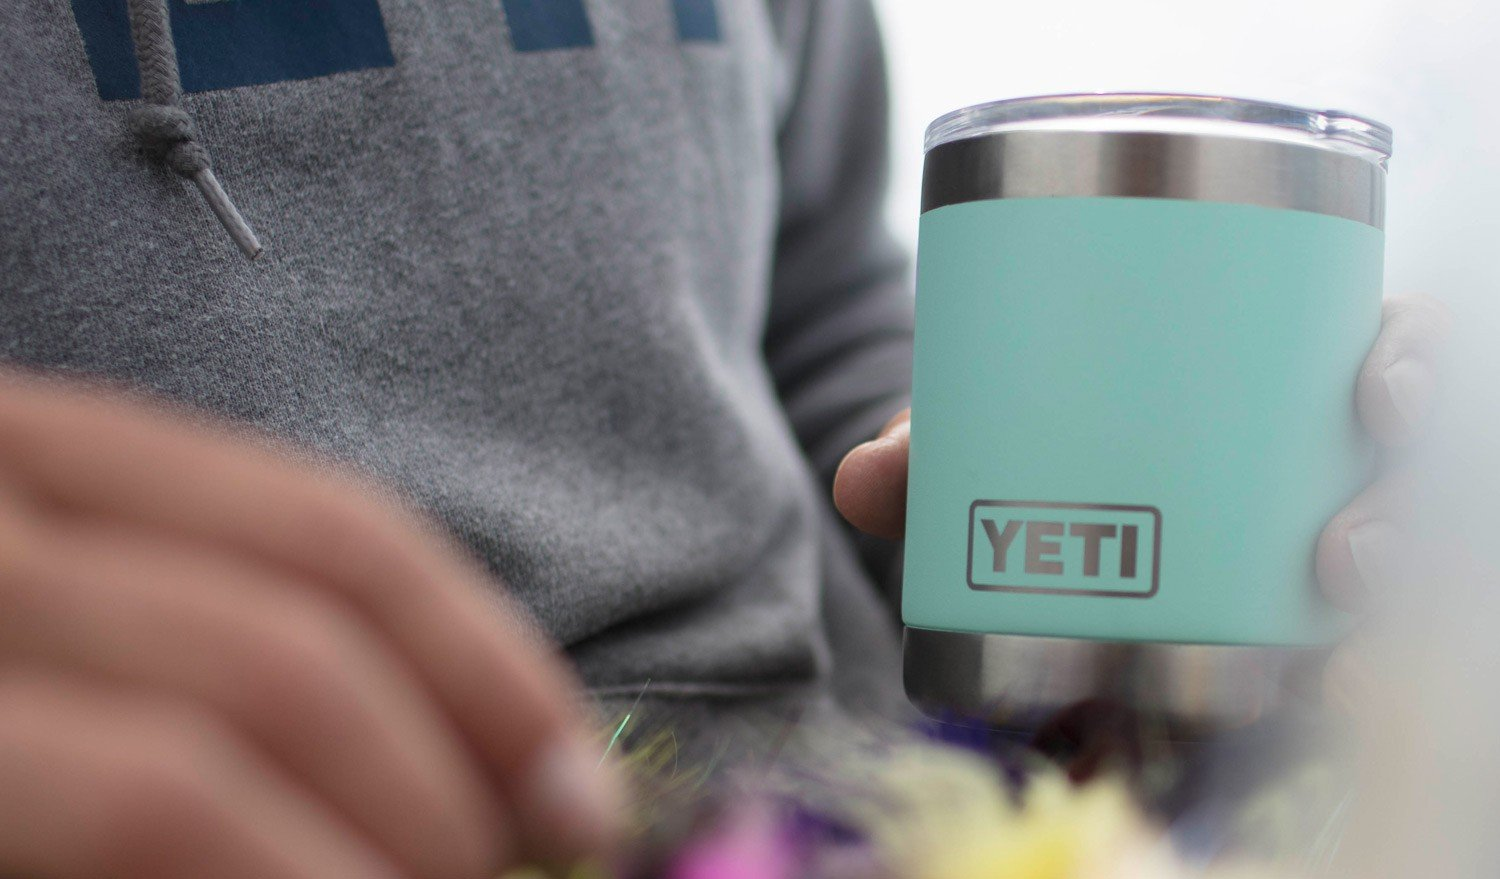 YETI Rambler 10oz Vacuum Insulated Stainless Steel Lowball with Lid, Seafoam DuraCoat by YETI (Image #7)